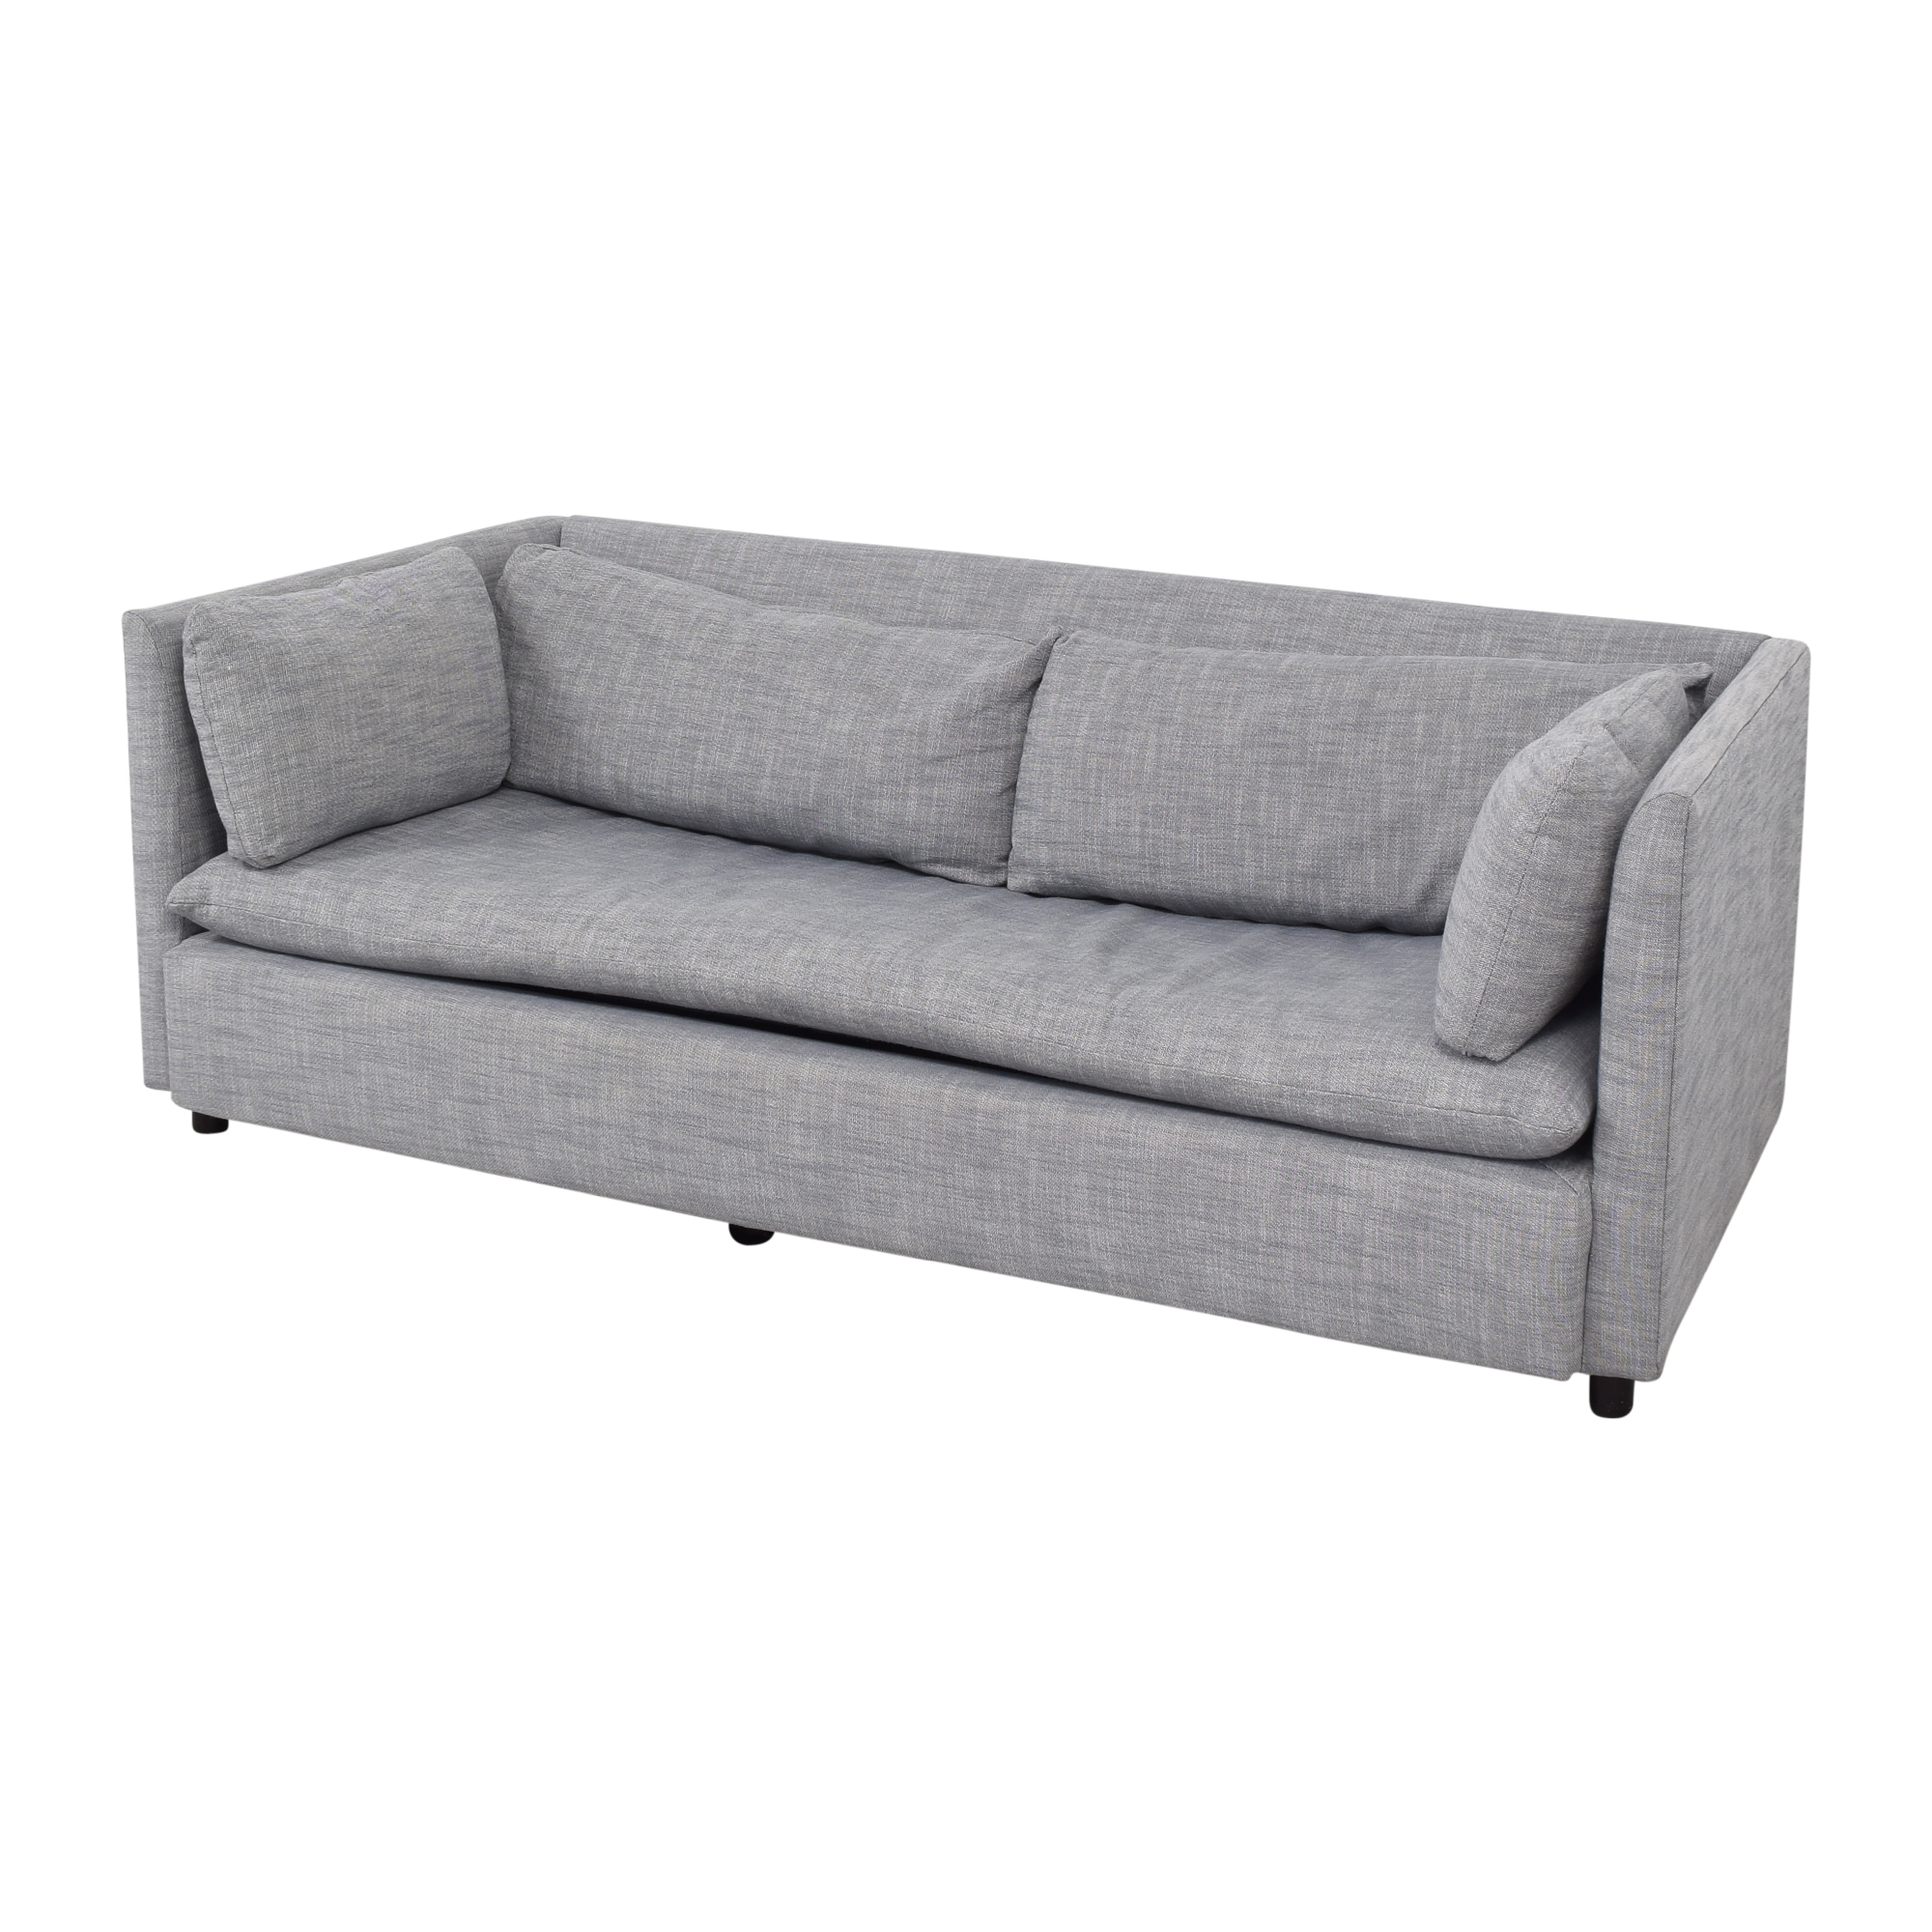 buy West Elm Shelter Queen Sleeper Sofa West Elm Sofas